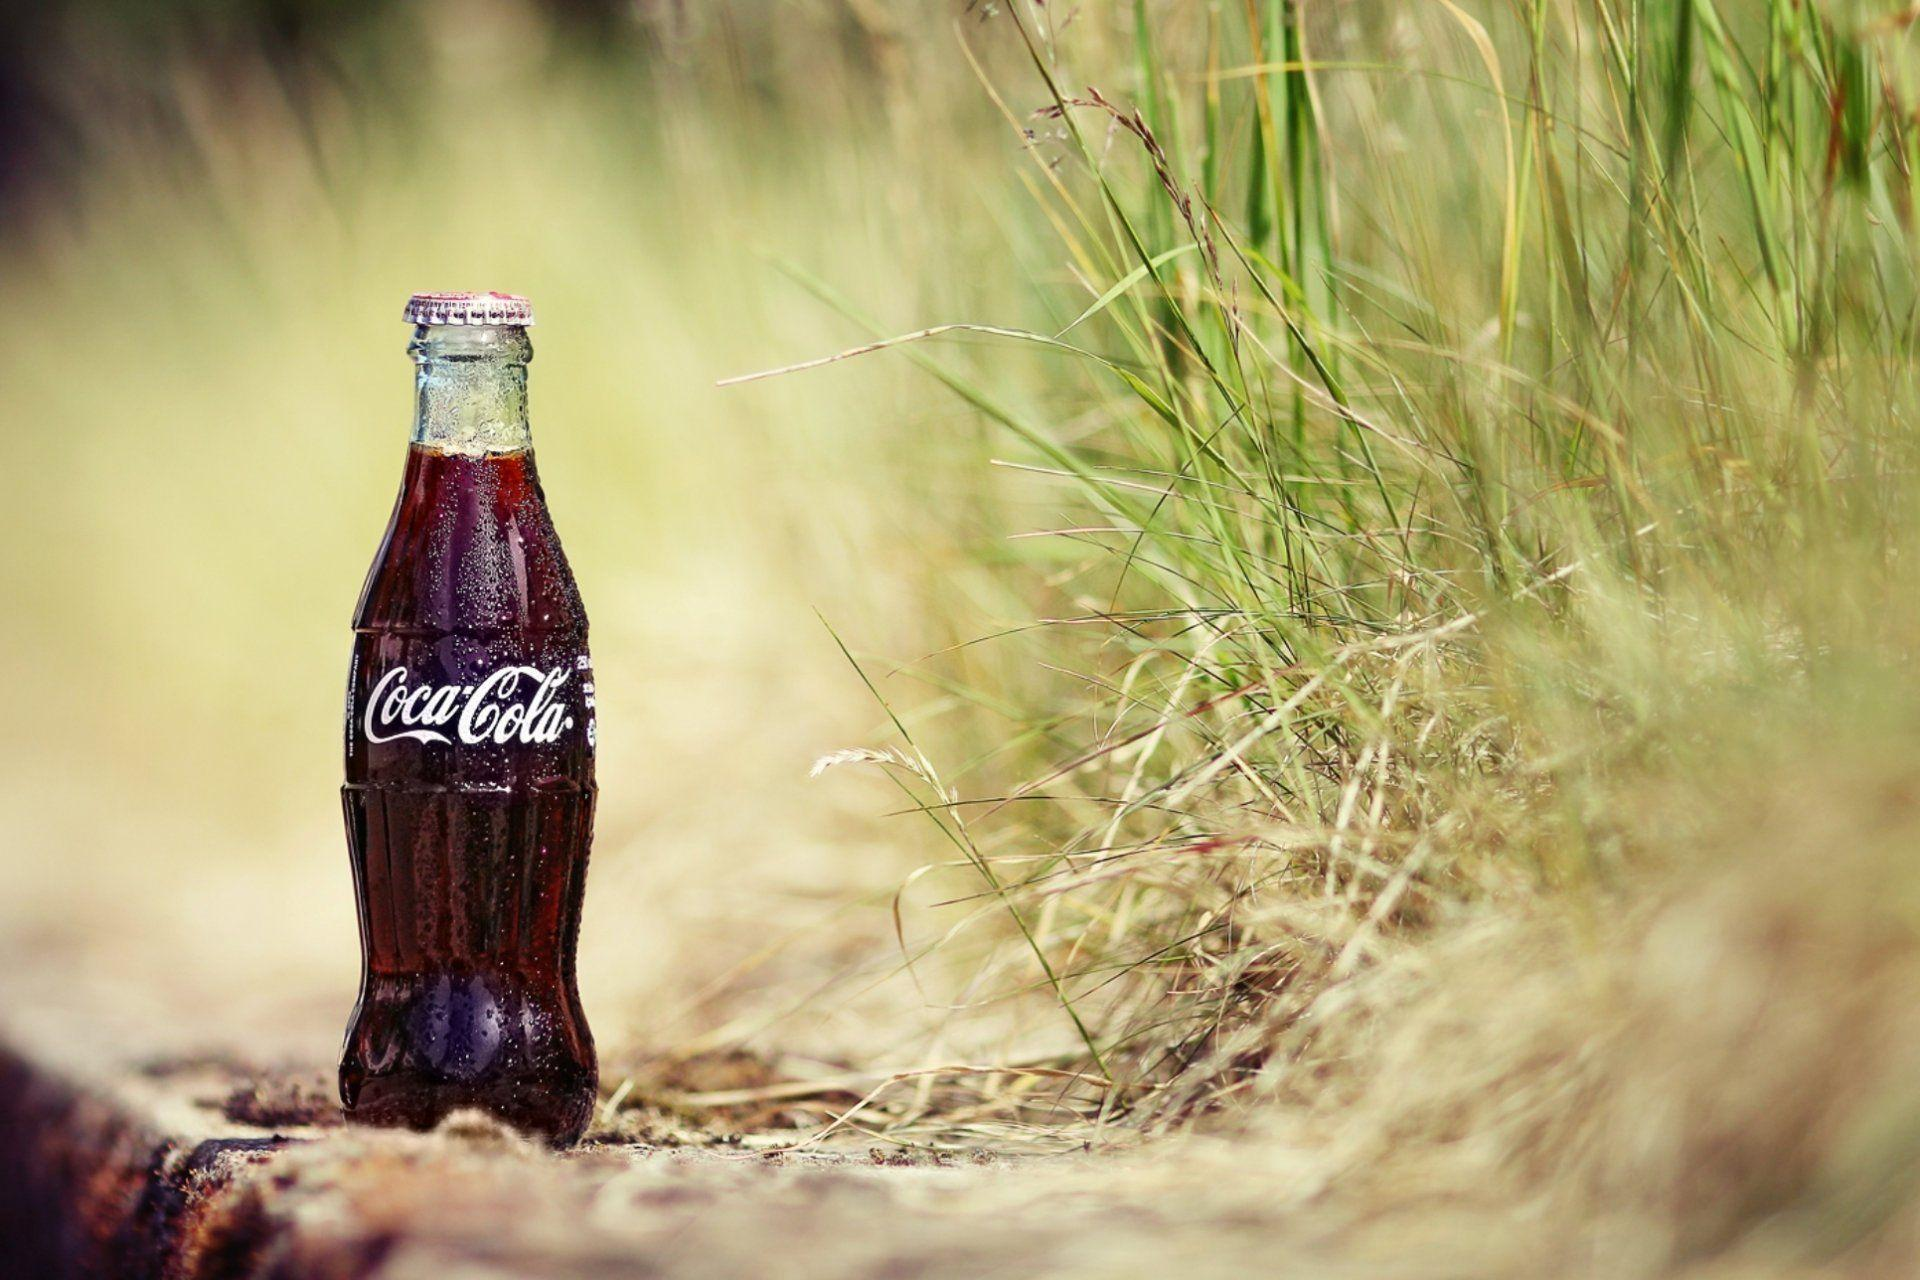 sand grass plants a bottle cola drops coca-cola coca-cola drink ...